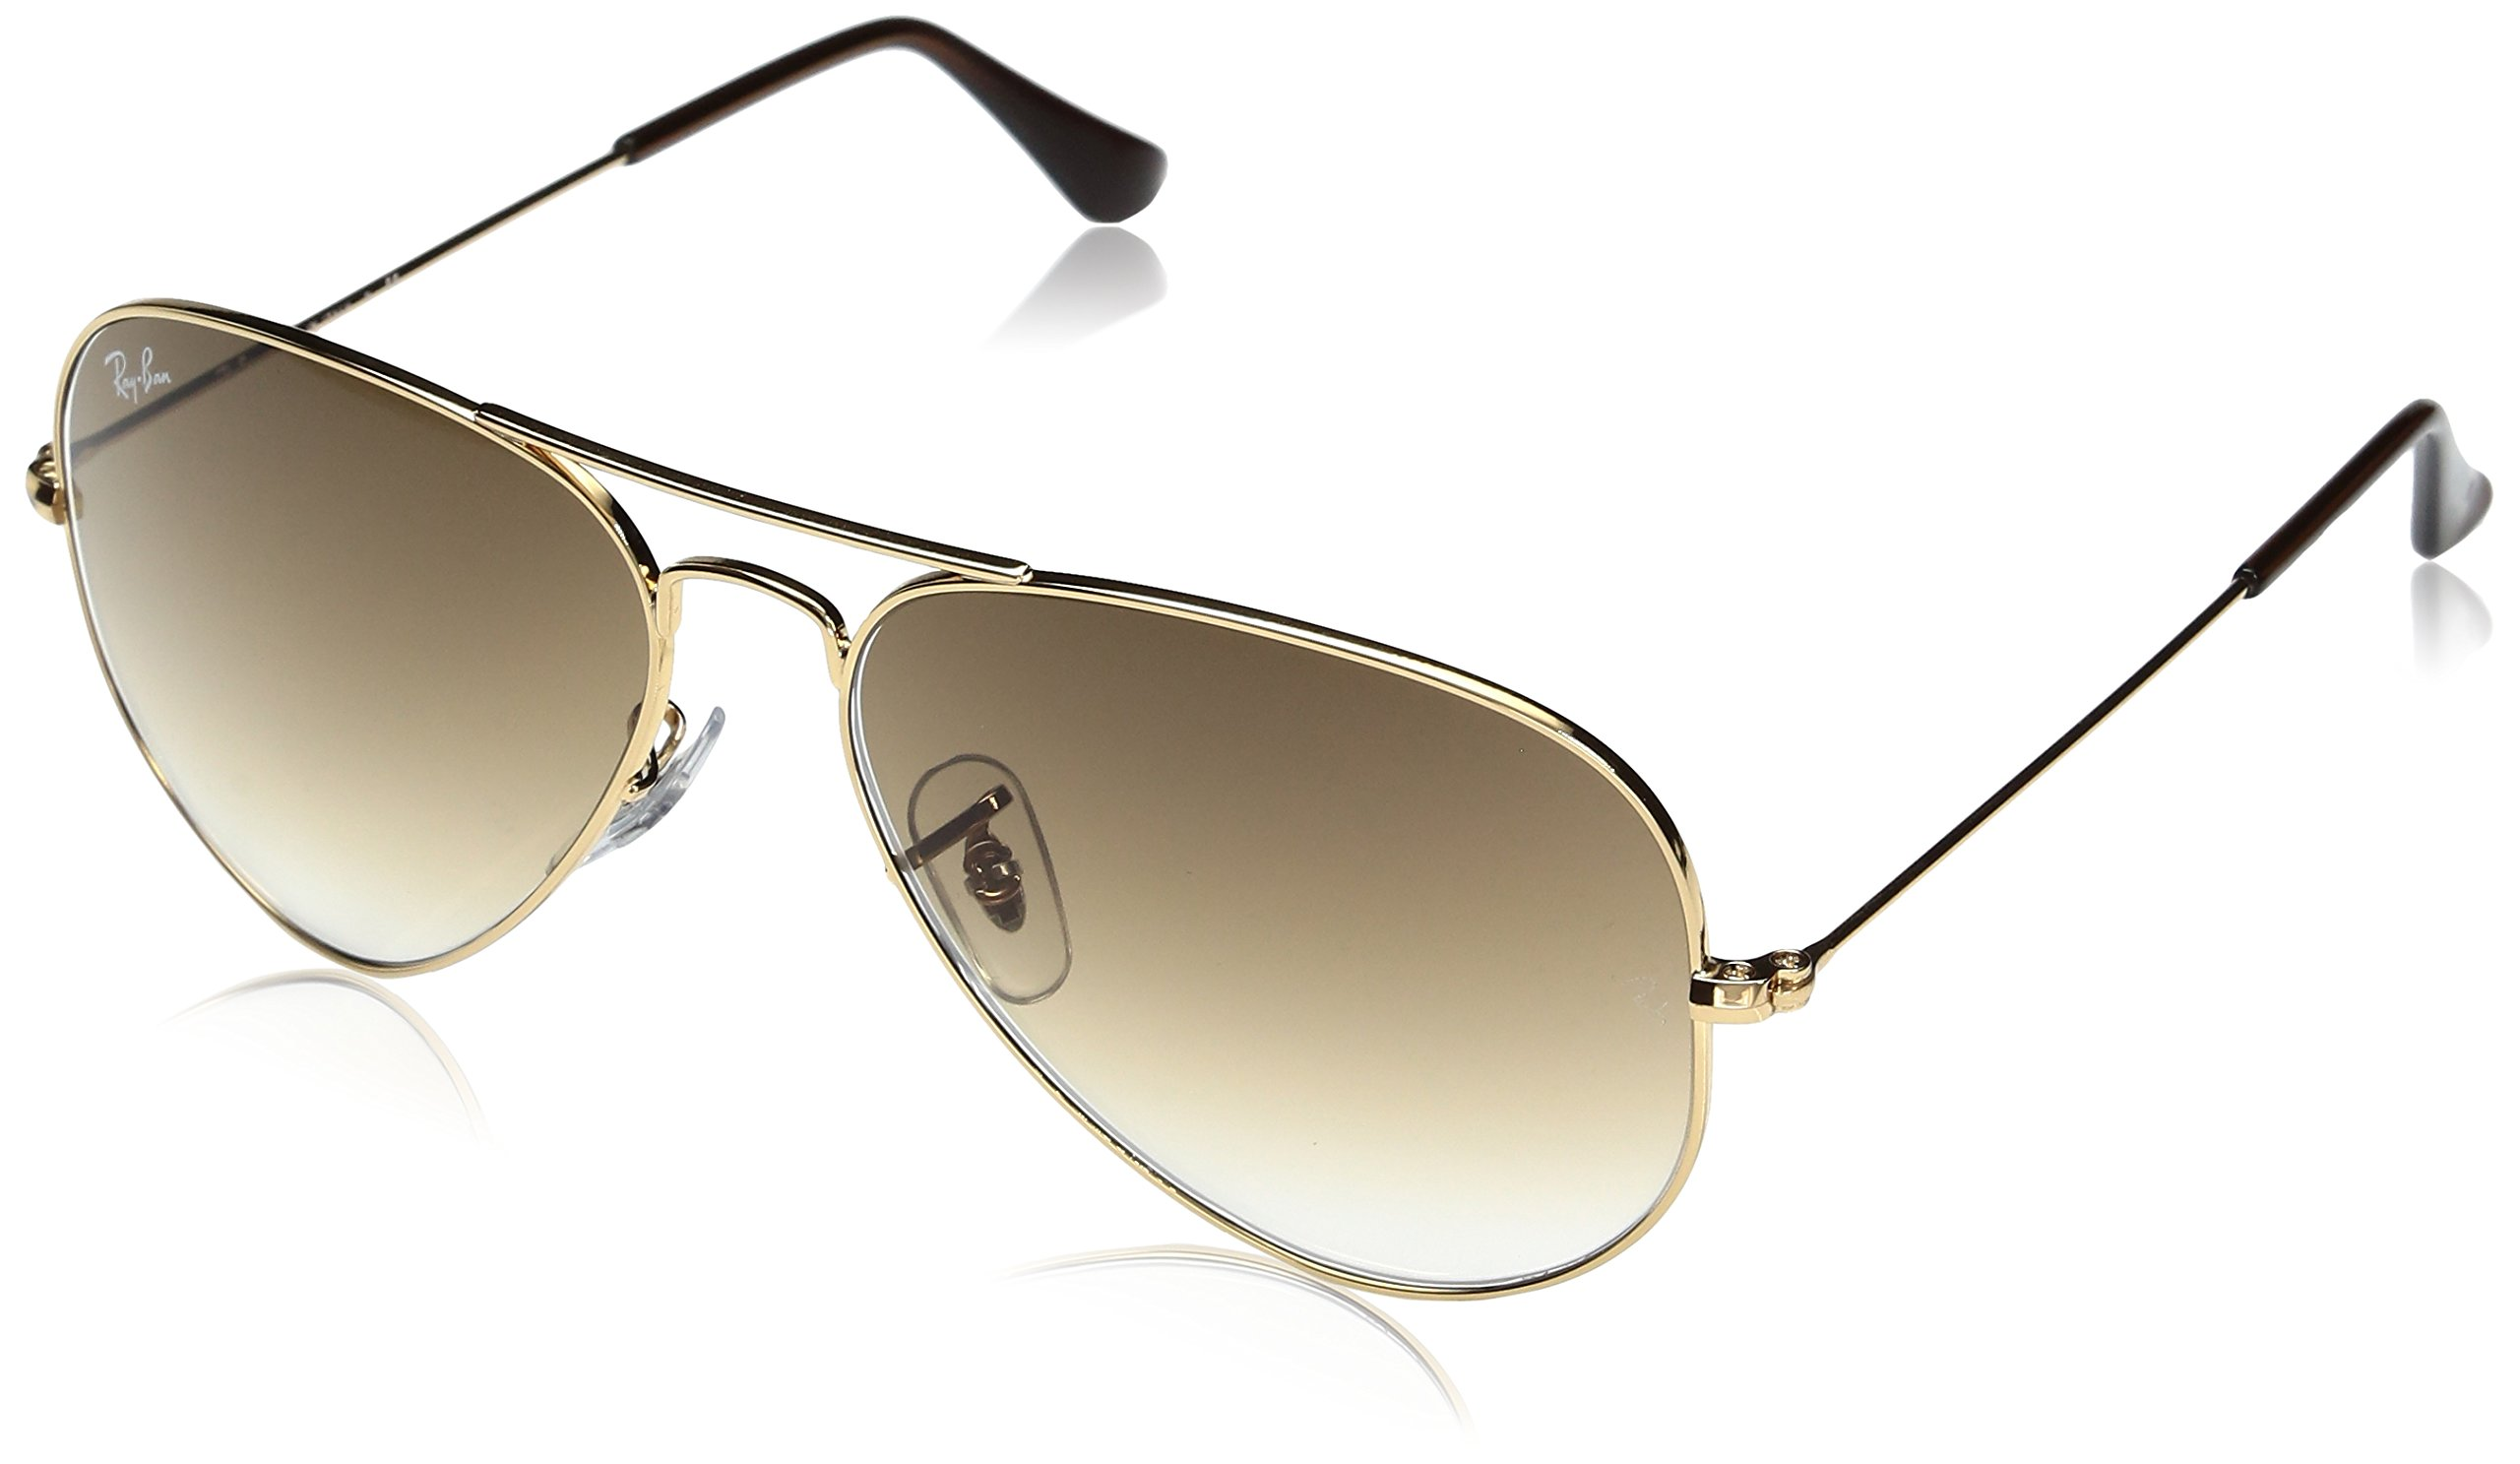 RAY-BAN RB3025 Aviator Large Metal Sunglasses, Gold/Gold Mirror, 58 mm by RAY-BAN